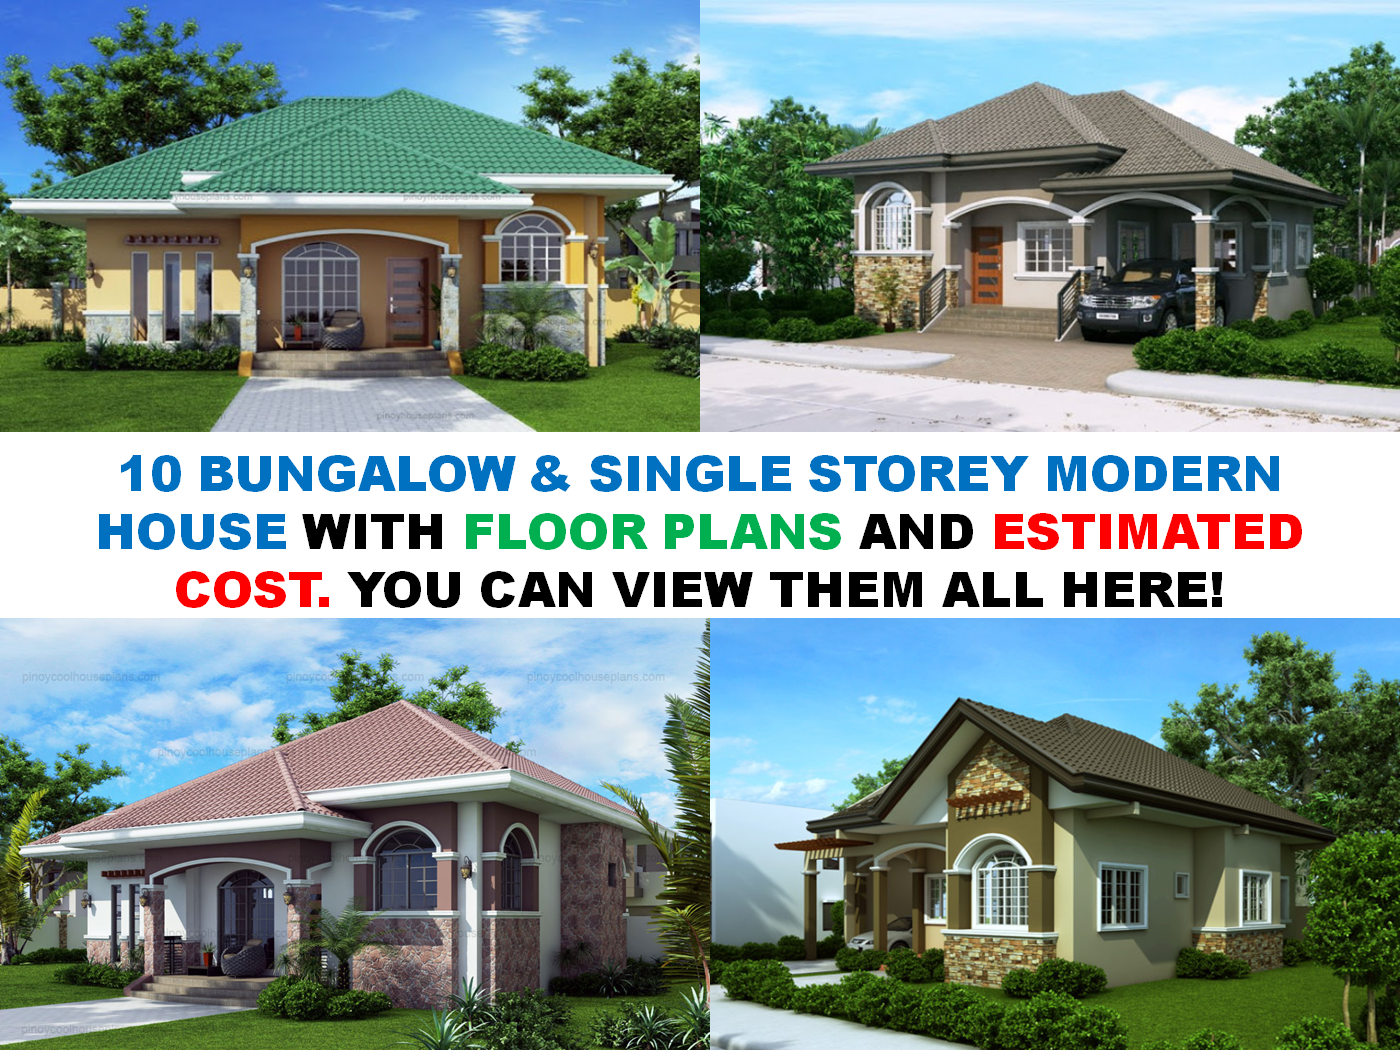 THOUGHTSKOTO Simple Storey House Design Ph Html on simple floor plans open house, simple pool house designs, simple two-story house, simple office house designs, simple economical house plans, simple ranch house designs, simple bungalow house designs, simple house plans designs, simple house design housing, simple affordable house plans, simple house plans philippines, simple semi detached house designs, simple country house plans,